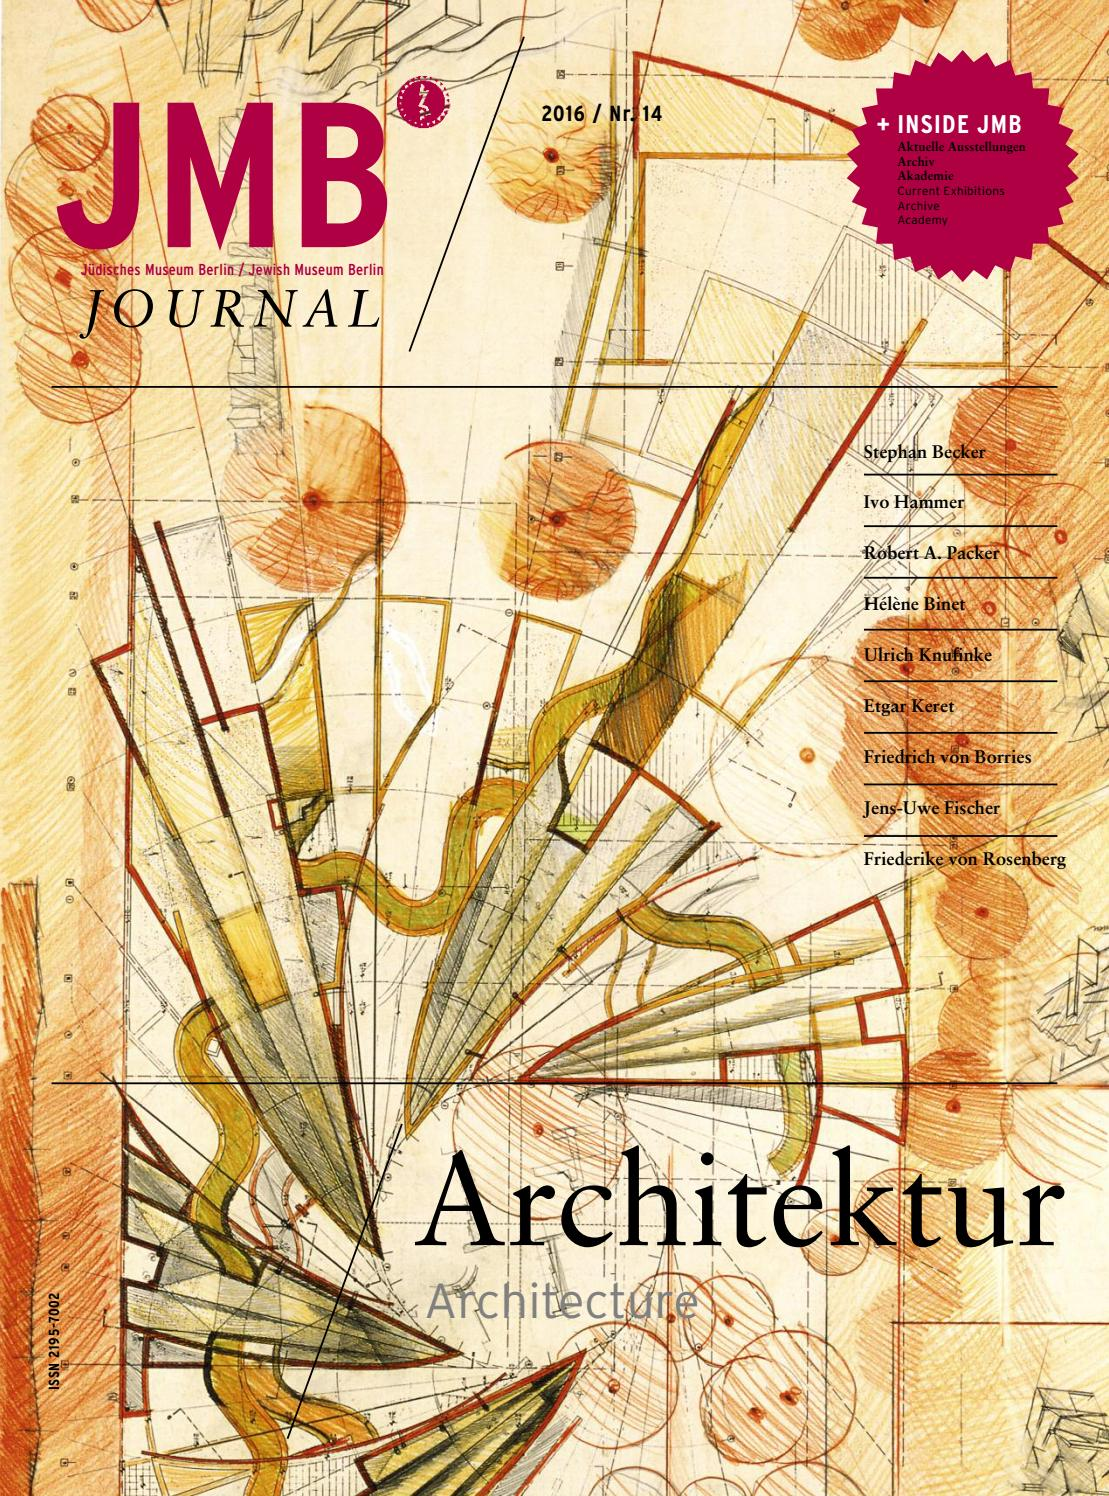 Jewish Museum Berlin: JMB Journal Nr. 14 by Jewish Museum Berlin - issuu